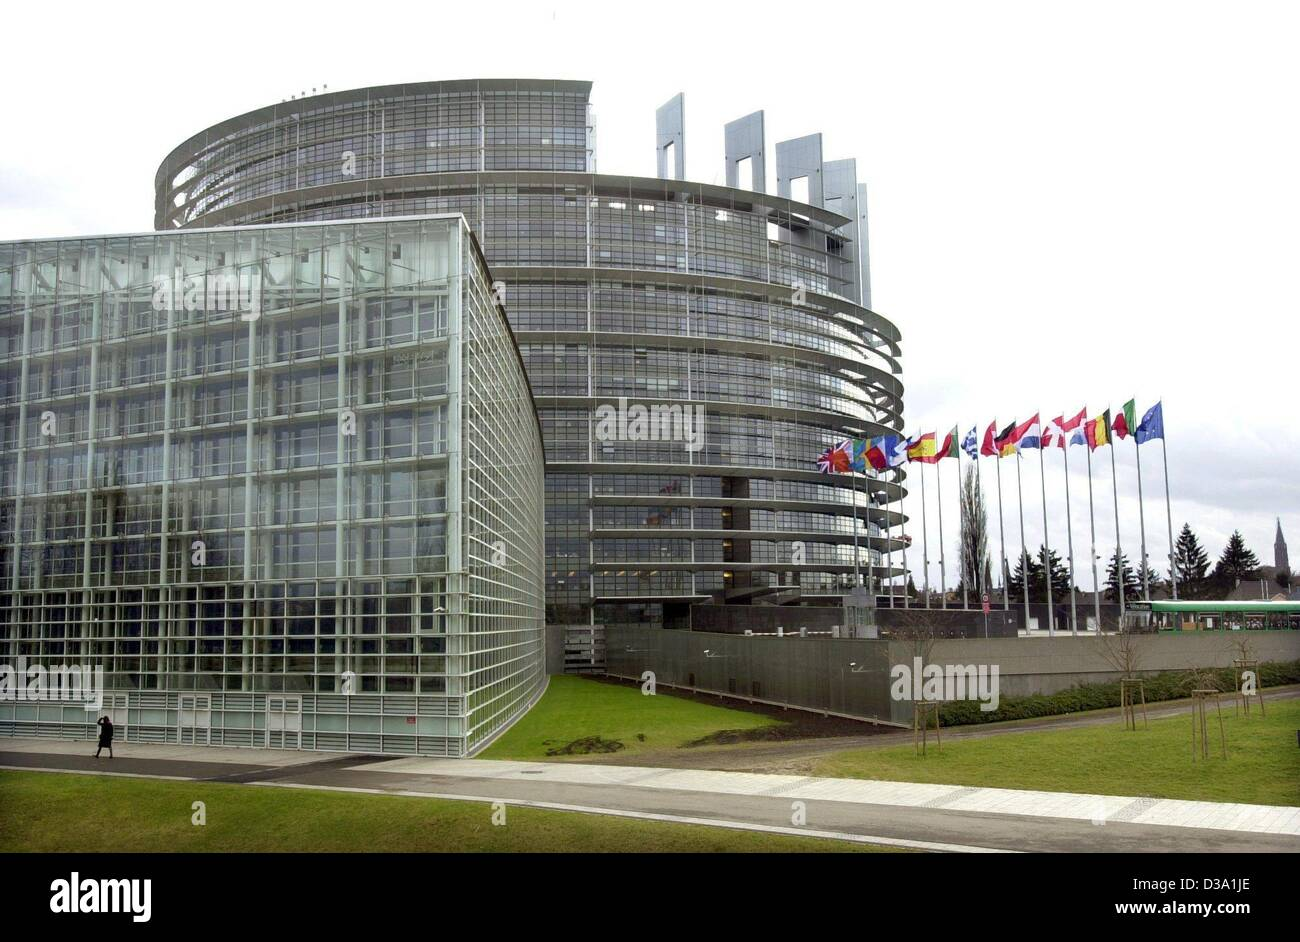 (dpa) - The building of the European Parliament in Strasbourg, 10 February 2002. Stock Photo